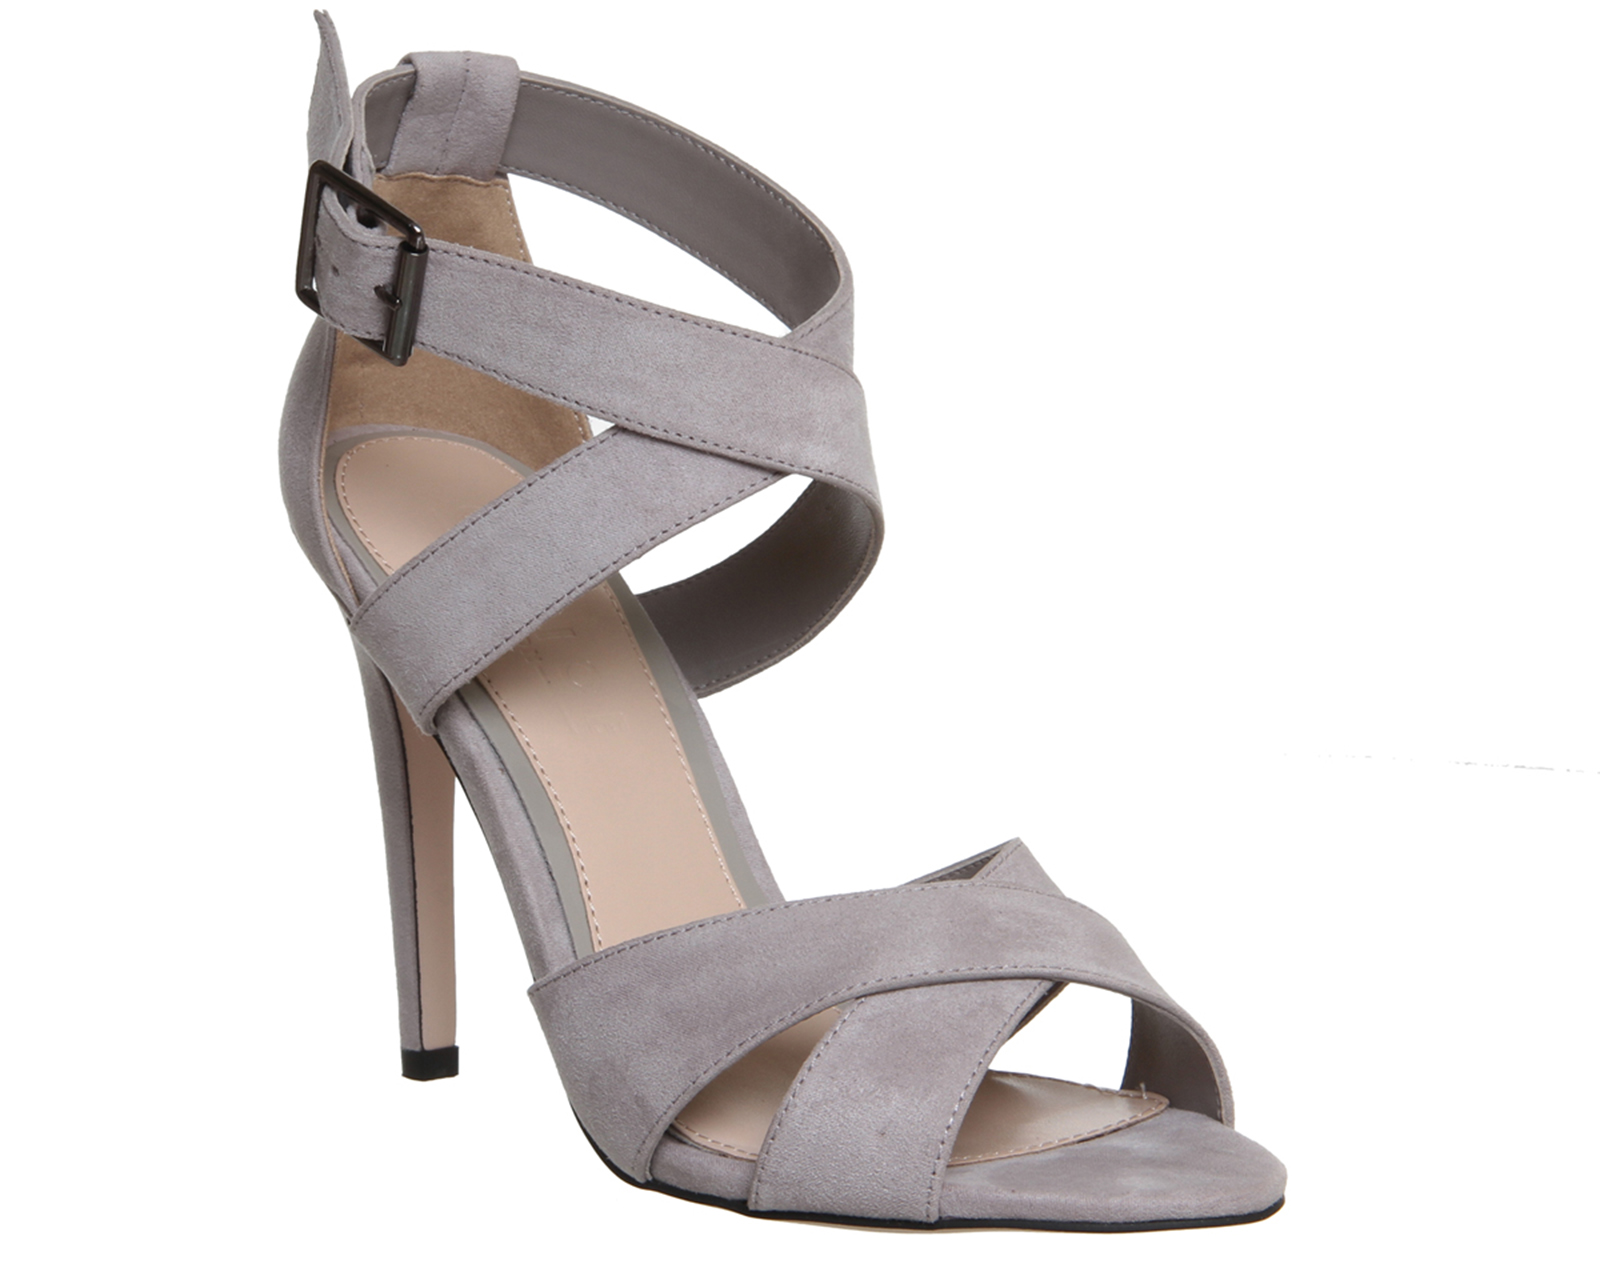 Grey Heels For Women - Is Heel